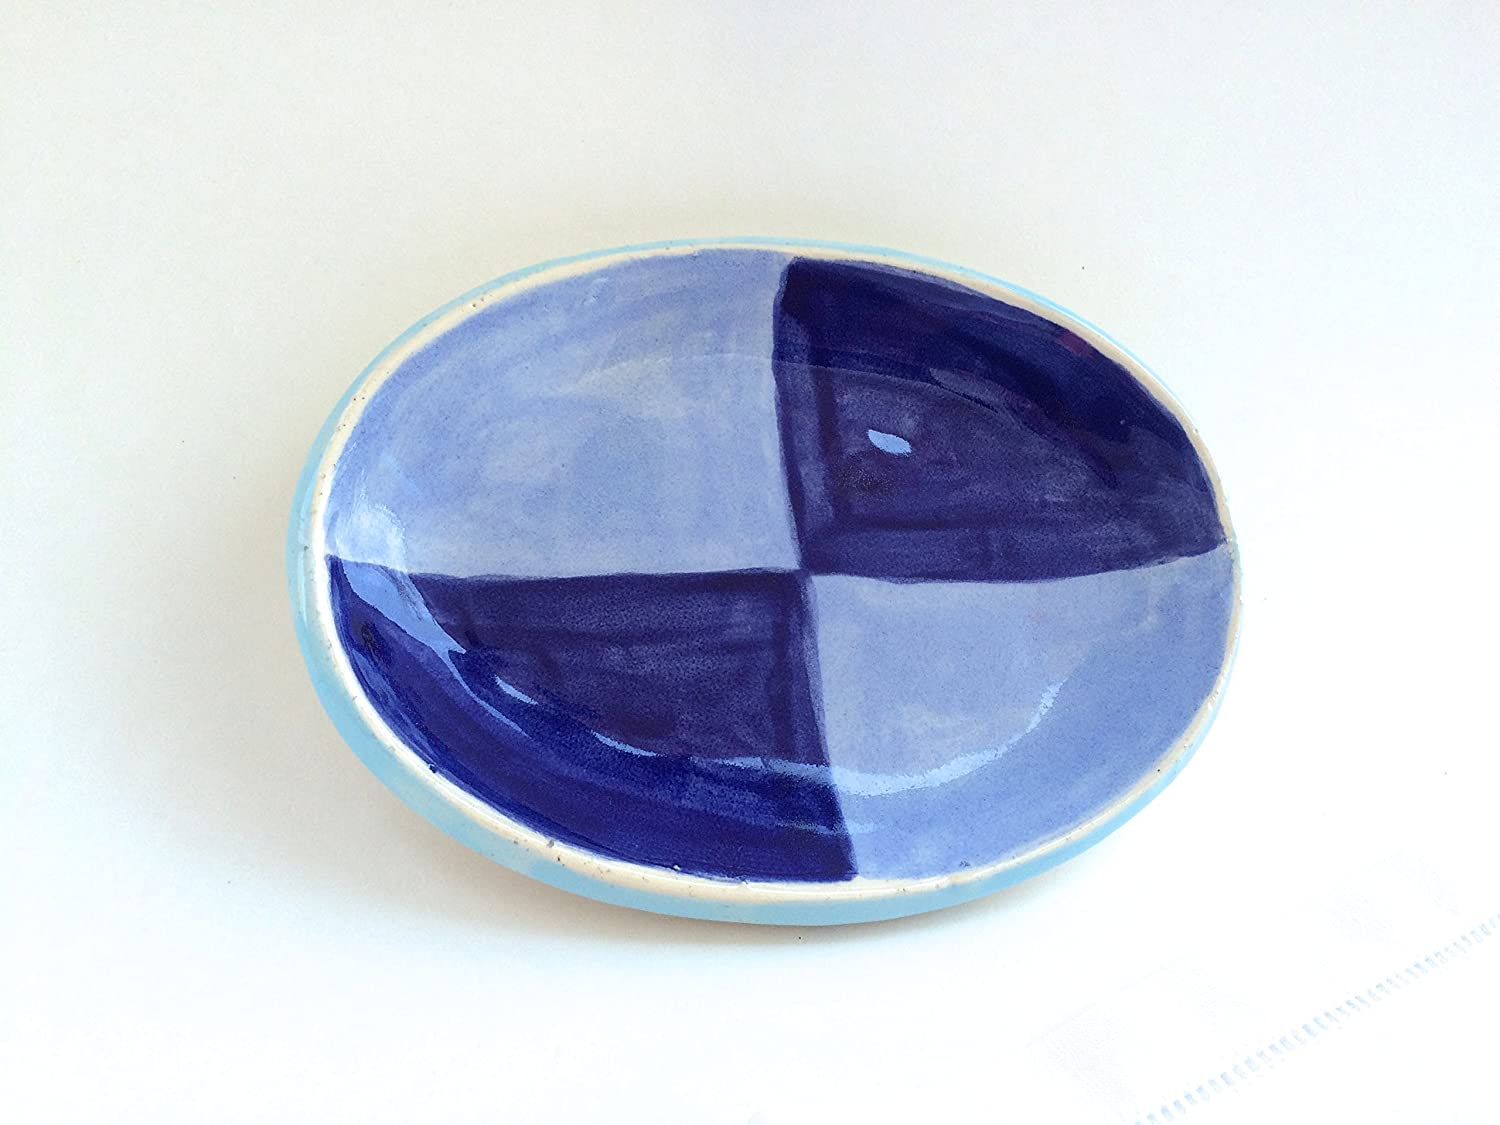 Handmade Pottery Plate Spoon Rest Handmade Serving Soap Dish Small Oval Dish